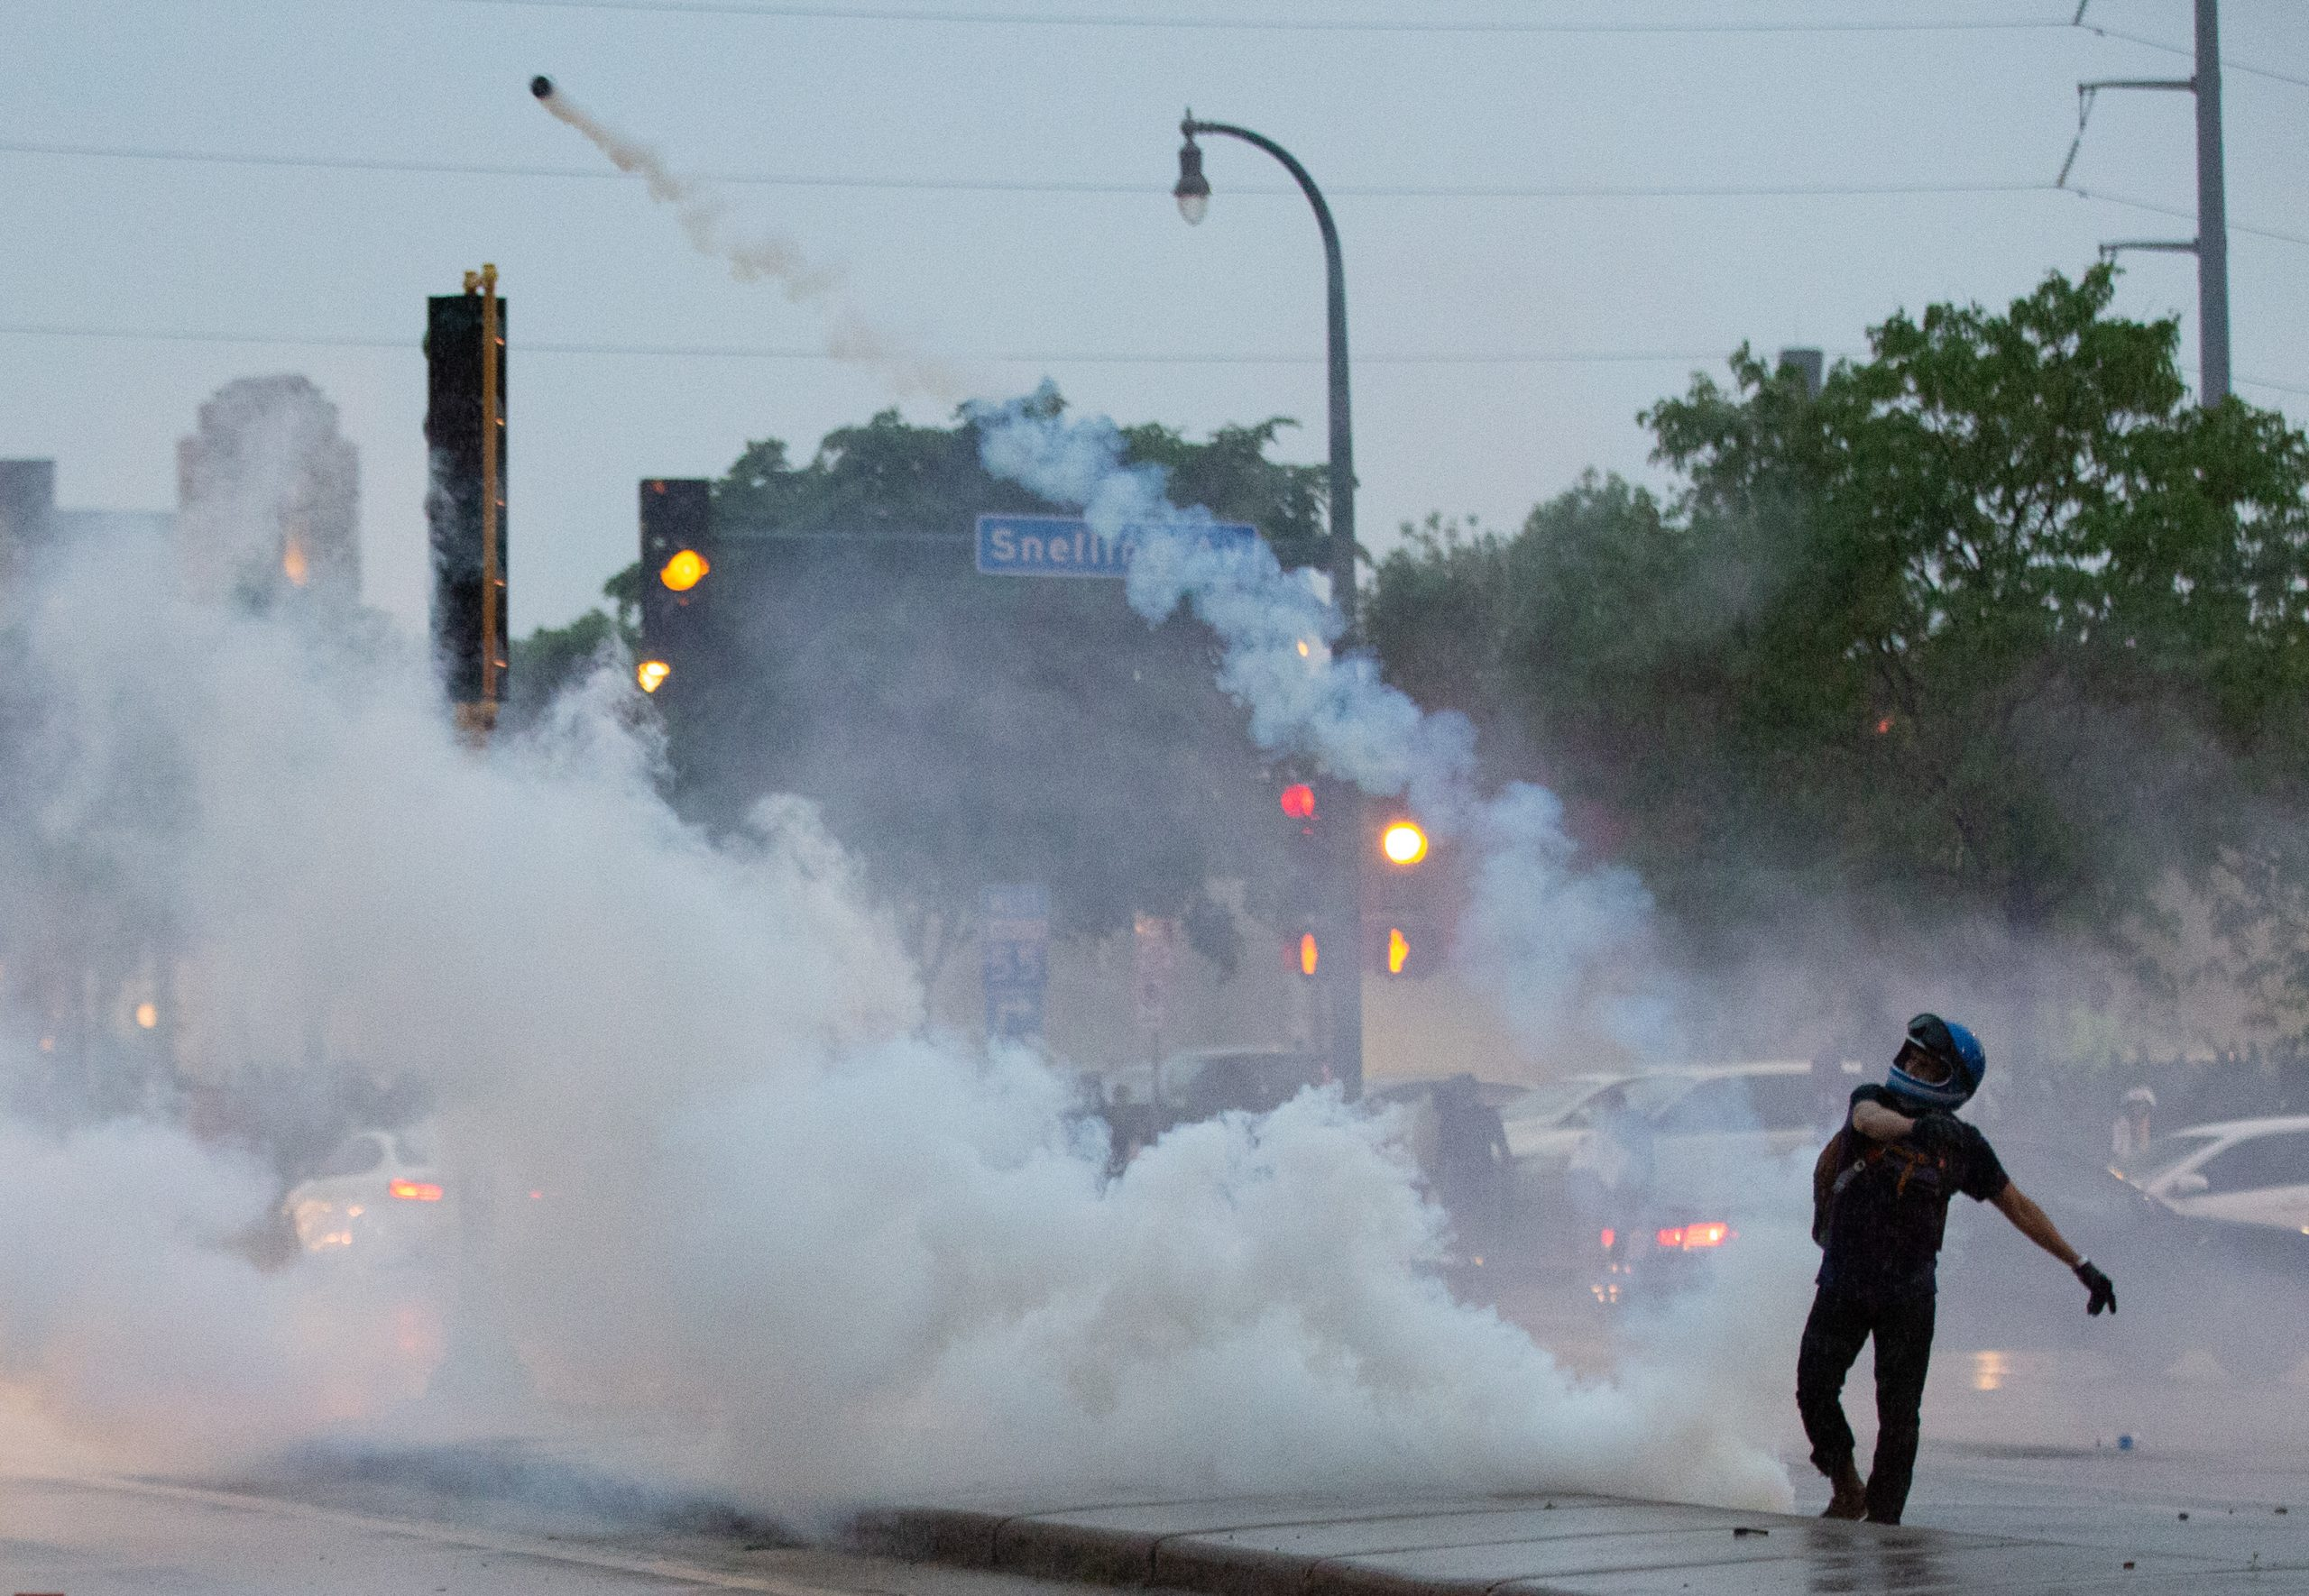 VIDEO: Tear gas flies as Minneapolis rioters protest death of George Floyd in police custody